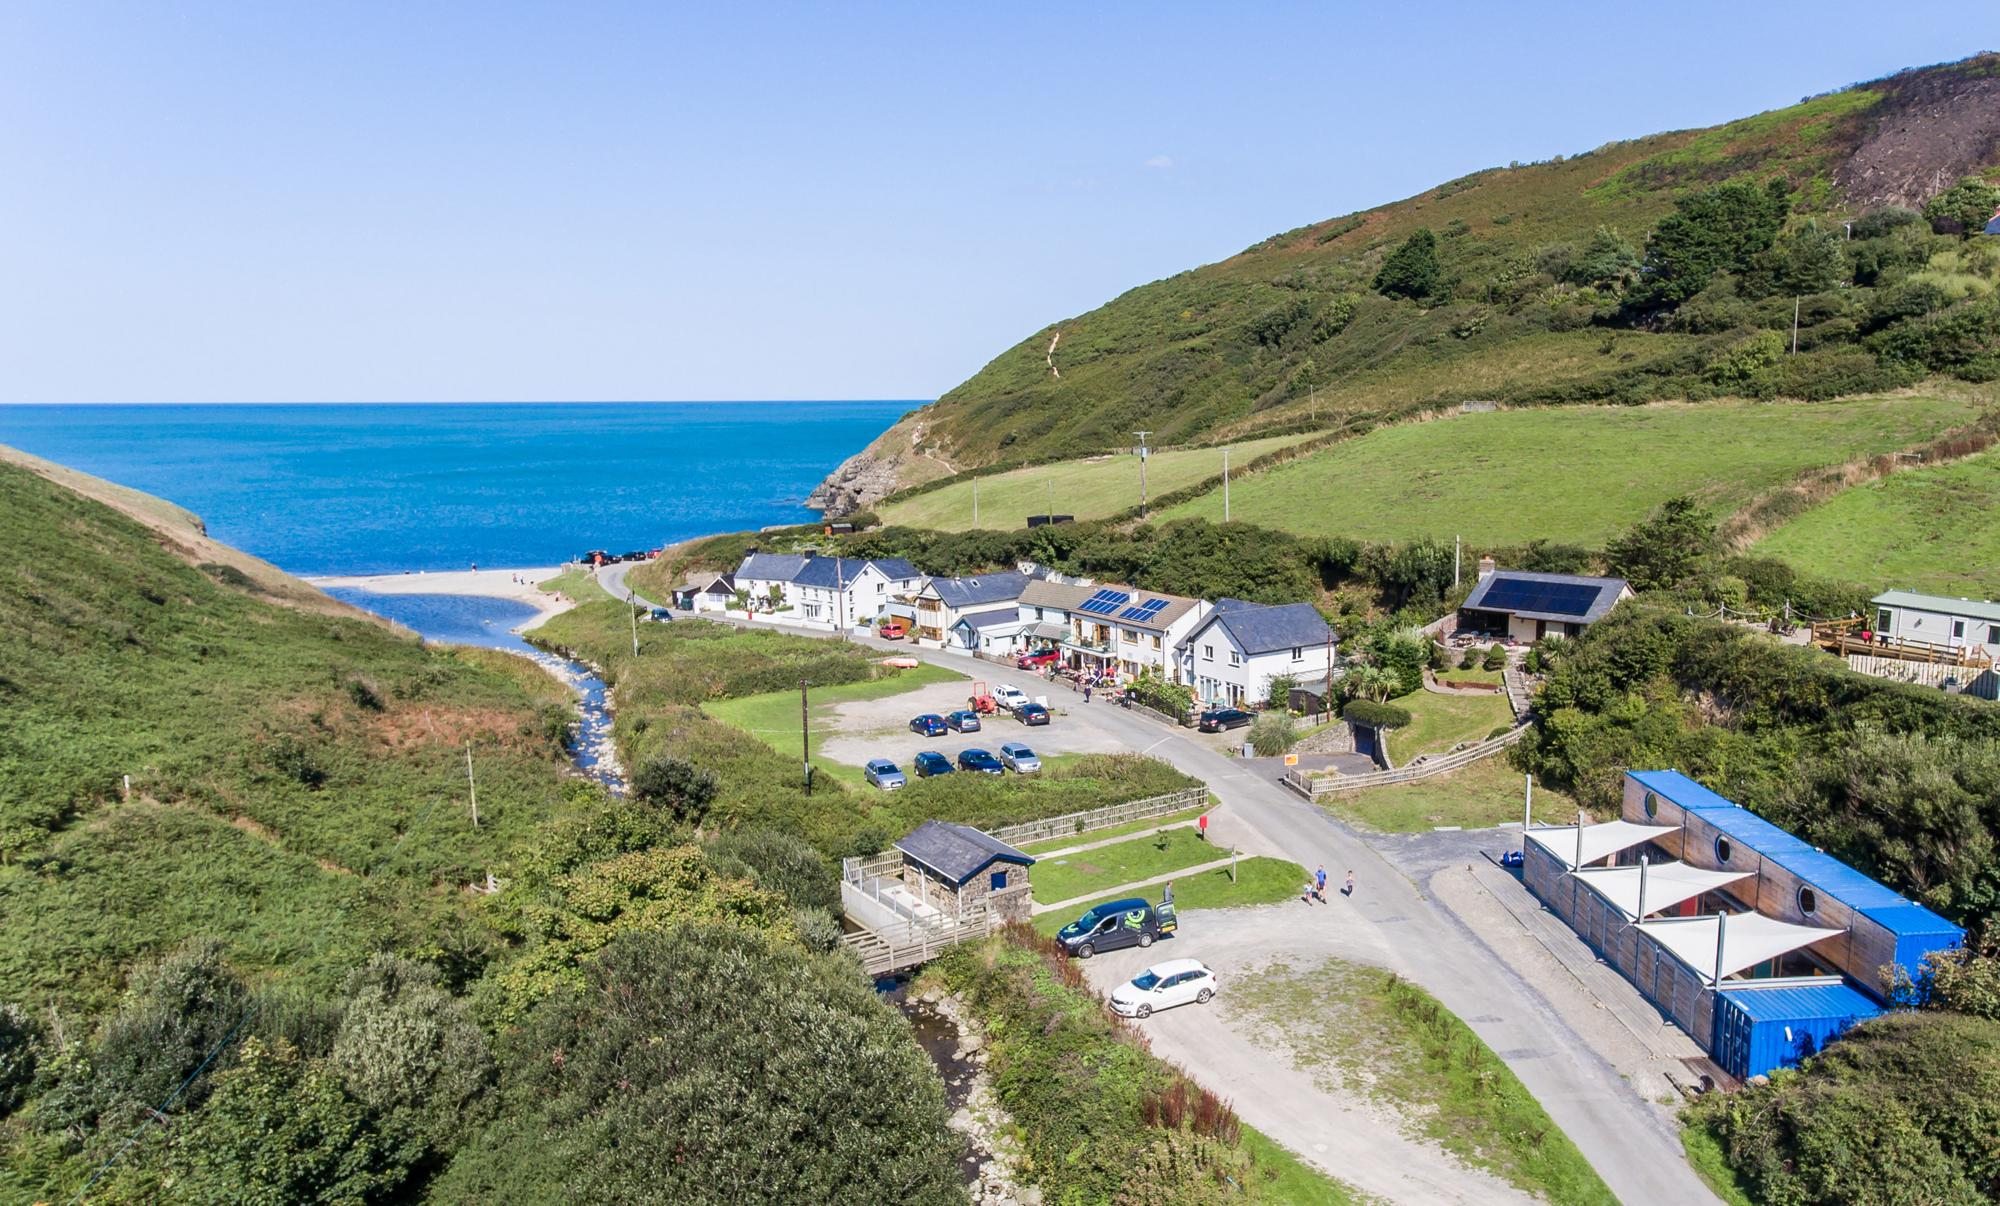 New Quay Camping | Campsites in New Quay, Ceredigion